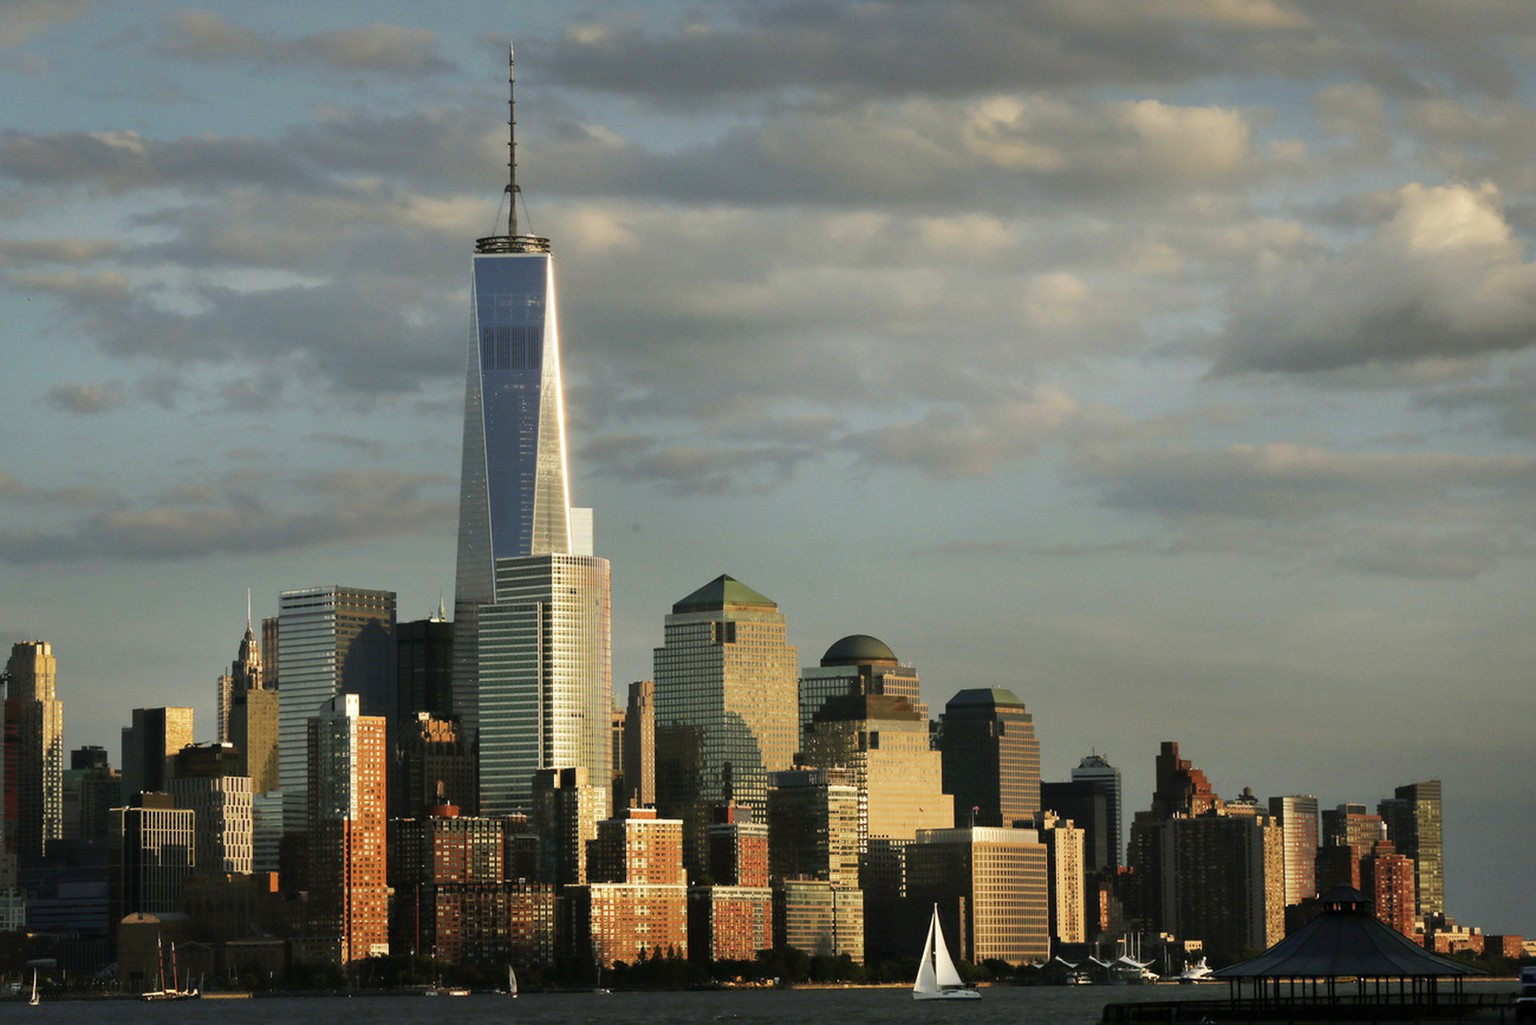 In this Sunday, Sept. 7, 2014 photo, 1 World Trade Center towers above the lower Manhattan skyline in New York. Thirteen years after 9/11 forever changed the New York skyline, officials say developments at the World Trade Center are on track and on budget. (AP Photo/Mark Lennihan)